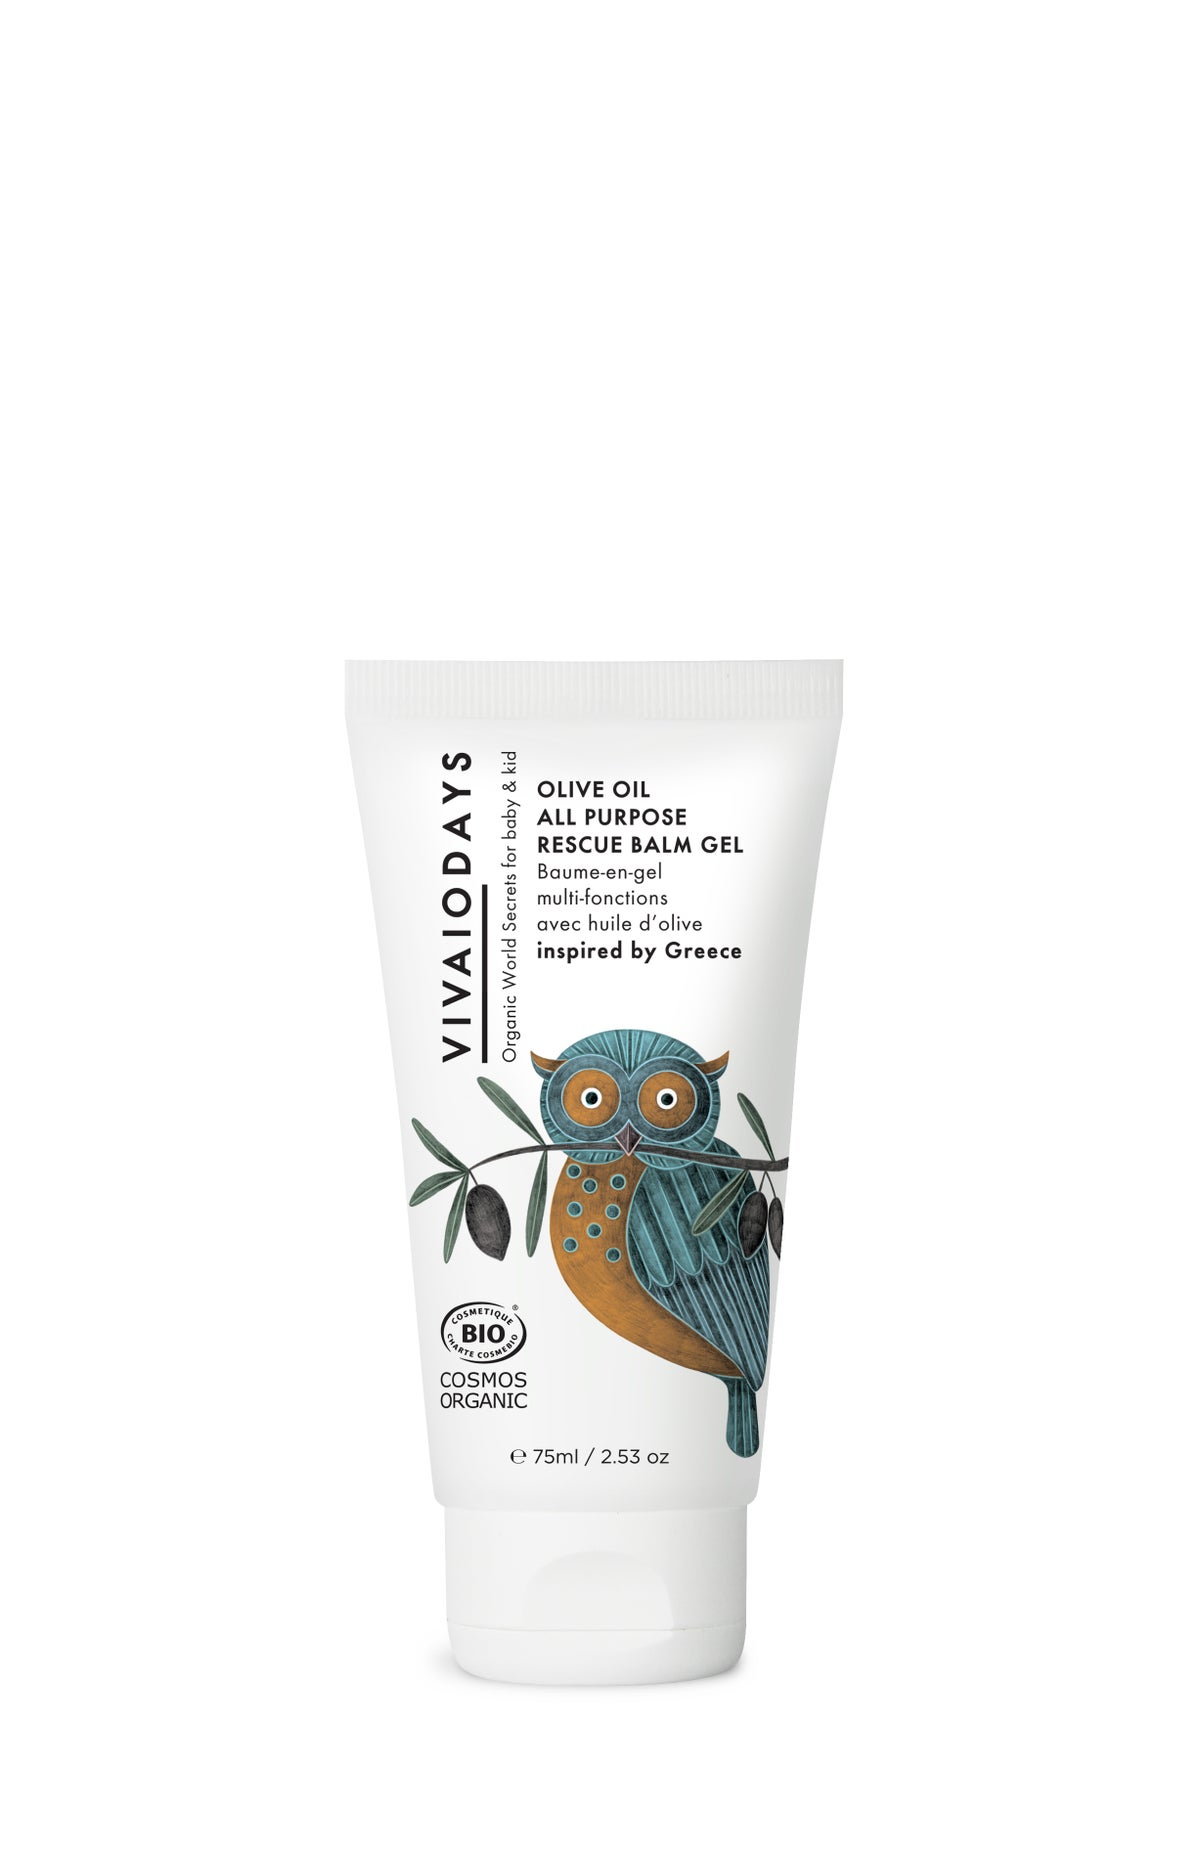 Image of VIVAIODAYS | OLIVE OIL ALL PURPOSE RESCUE BALM GEL inspired by Greece